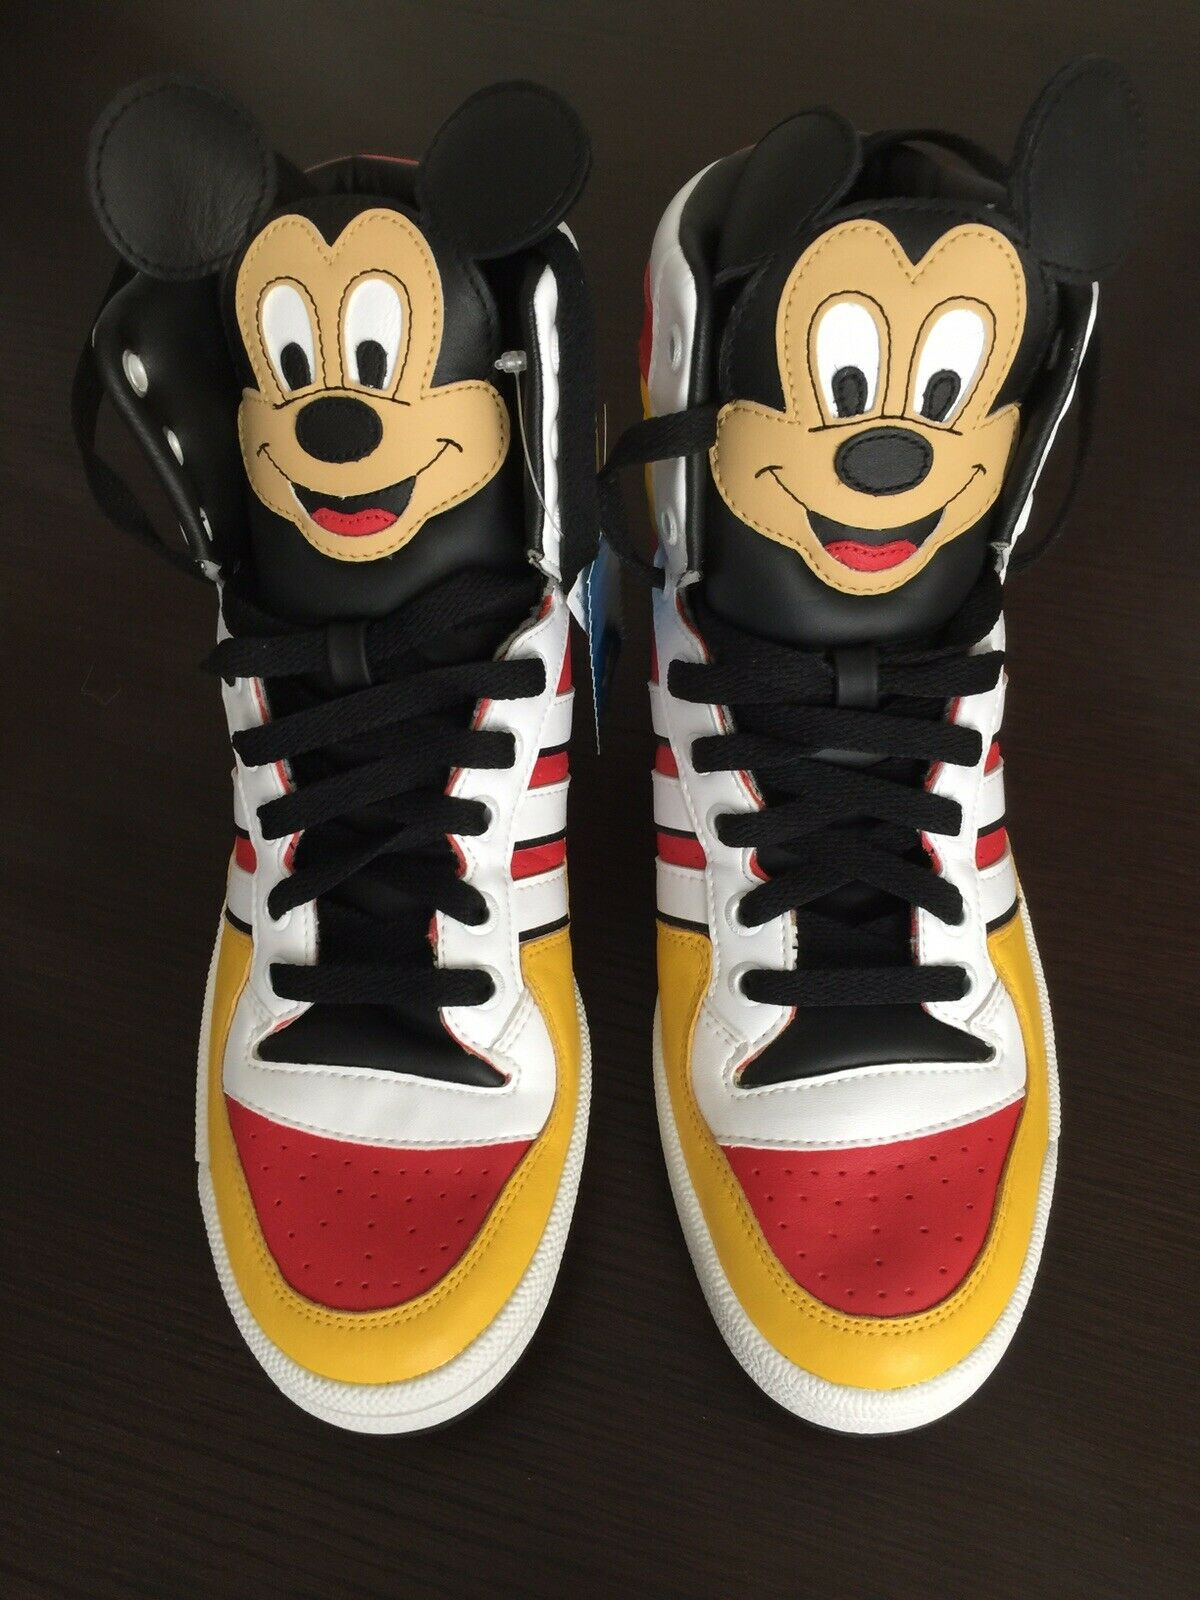 BNWT ADIDAS ORIGINALS Jeremy Scott Mickey Mouse Sneakers US8 LIMITED EDITION